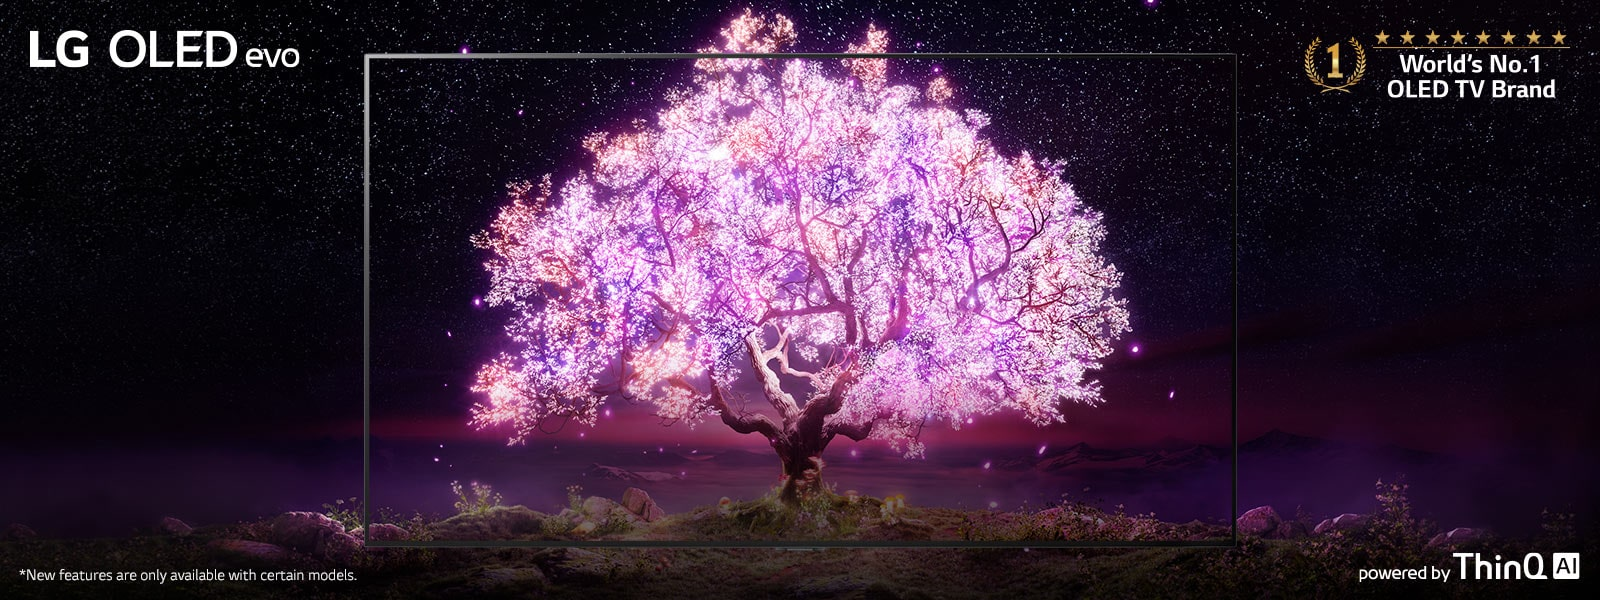 The scene where the OLED TV frame is overlapped with the image showing a tree shining in pink. The'World's No.1 OLED TV Brand' logo was placed on the upper right. The 'powered by ThinQ AI' logo was placed at the bottom right. 'LG OLED evo' logo was placed on the upper left corner.